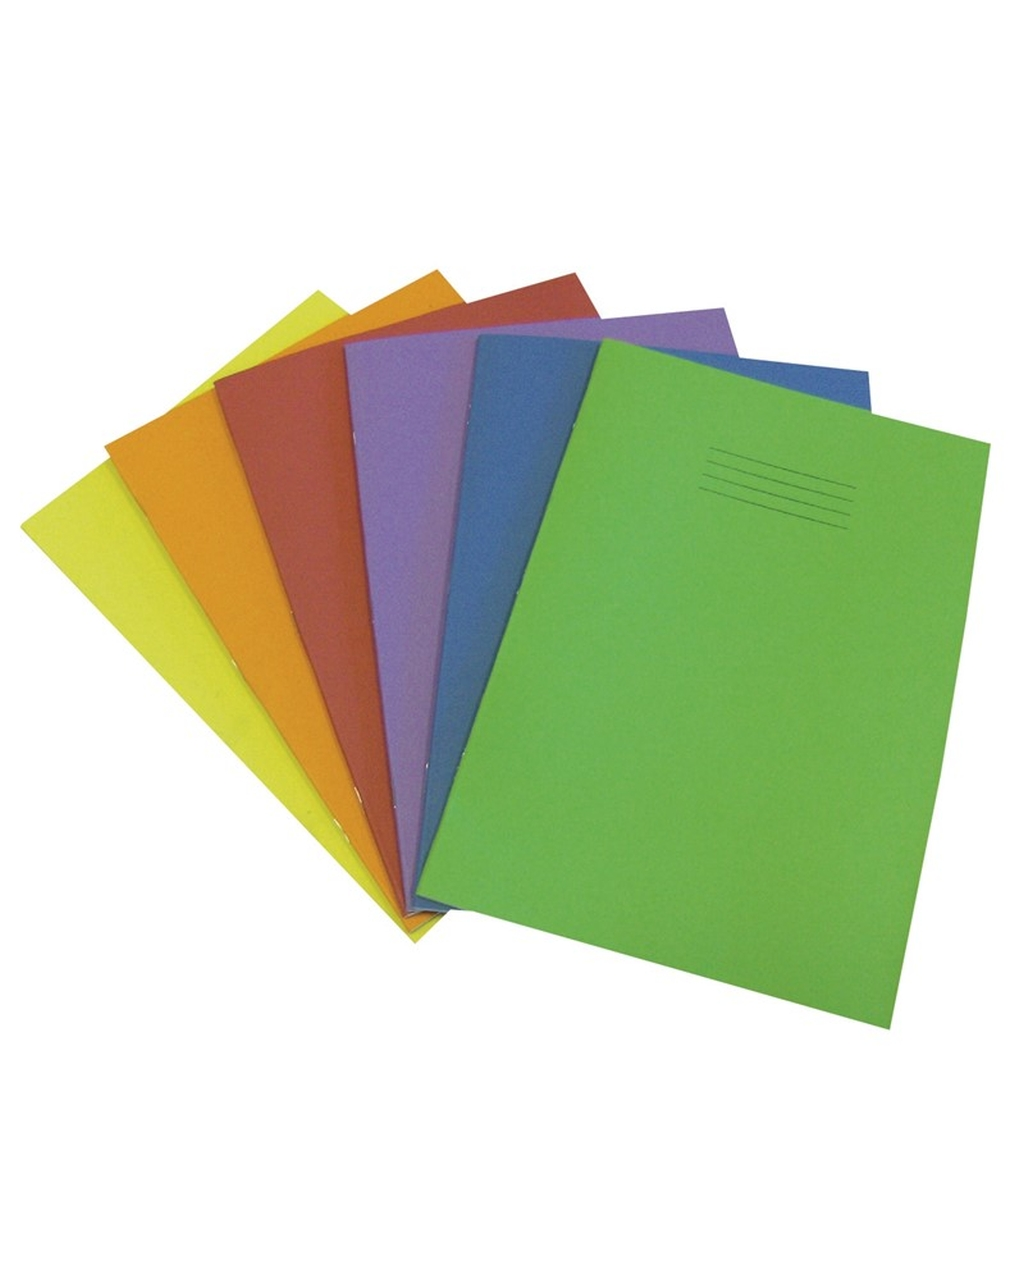 Exercise Book A4 (297 x 210mm) Light Green Cover 8mm Ruled & Margin 64 Pages